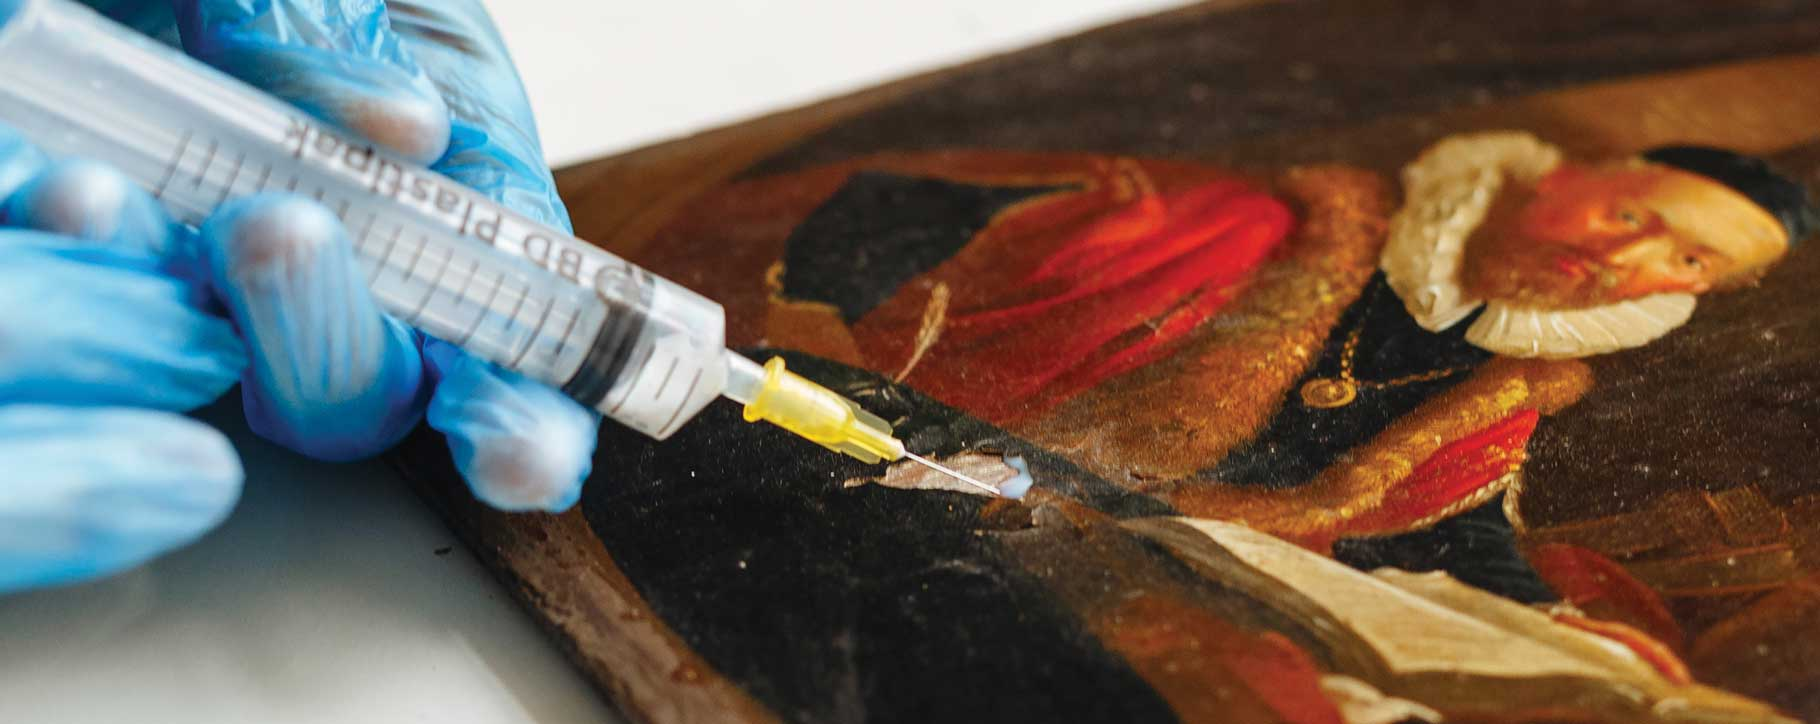 Injecting adhesive to re-adhere flaking paint